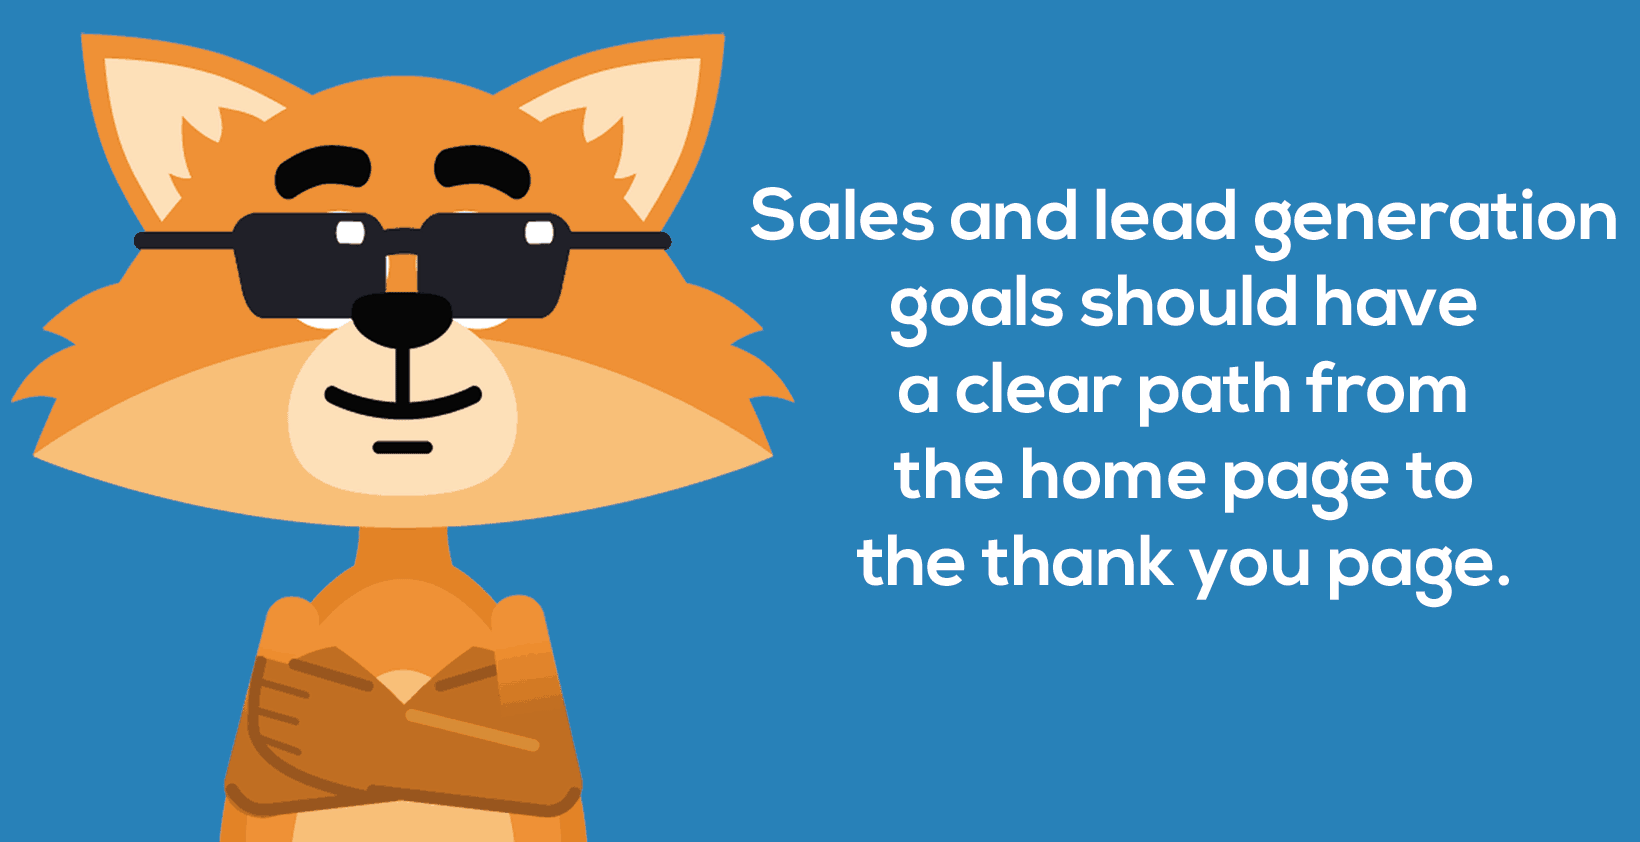 Sales and lead generation goals should have a clear path from the home page to the thank you page.